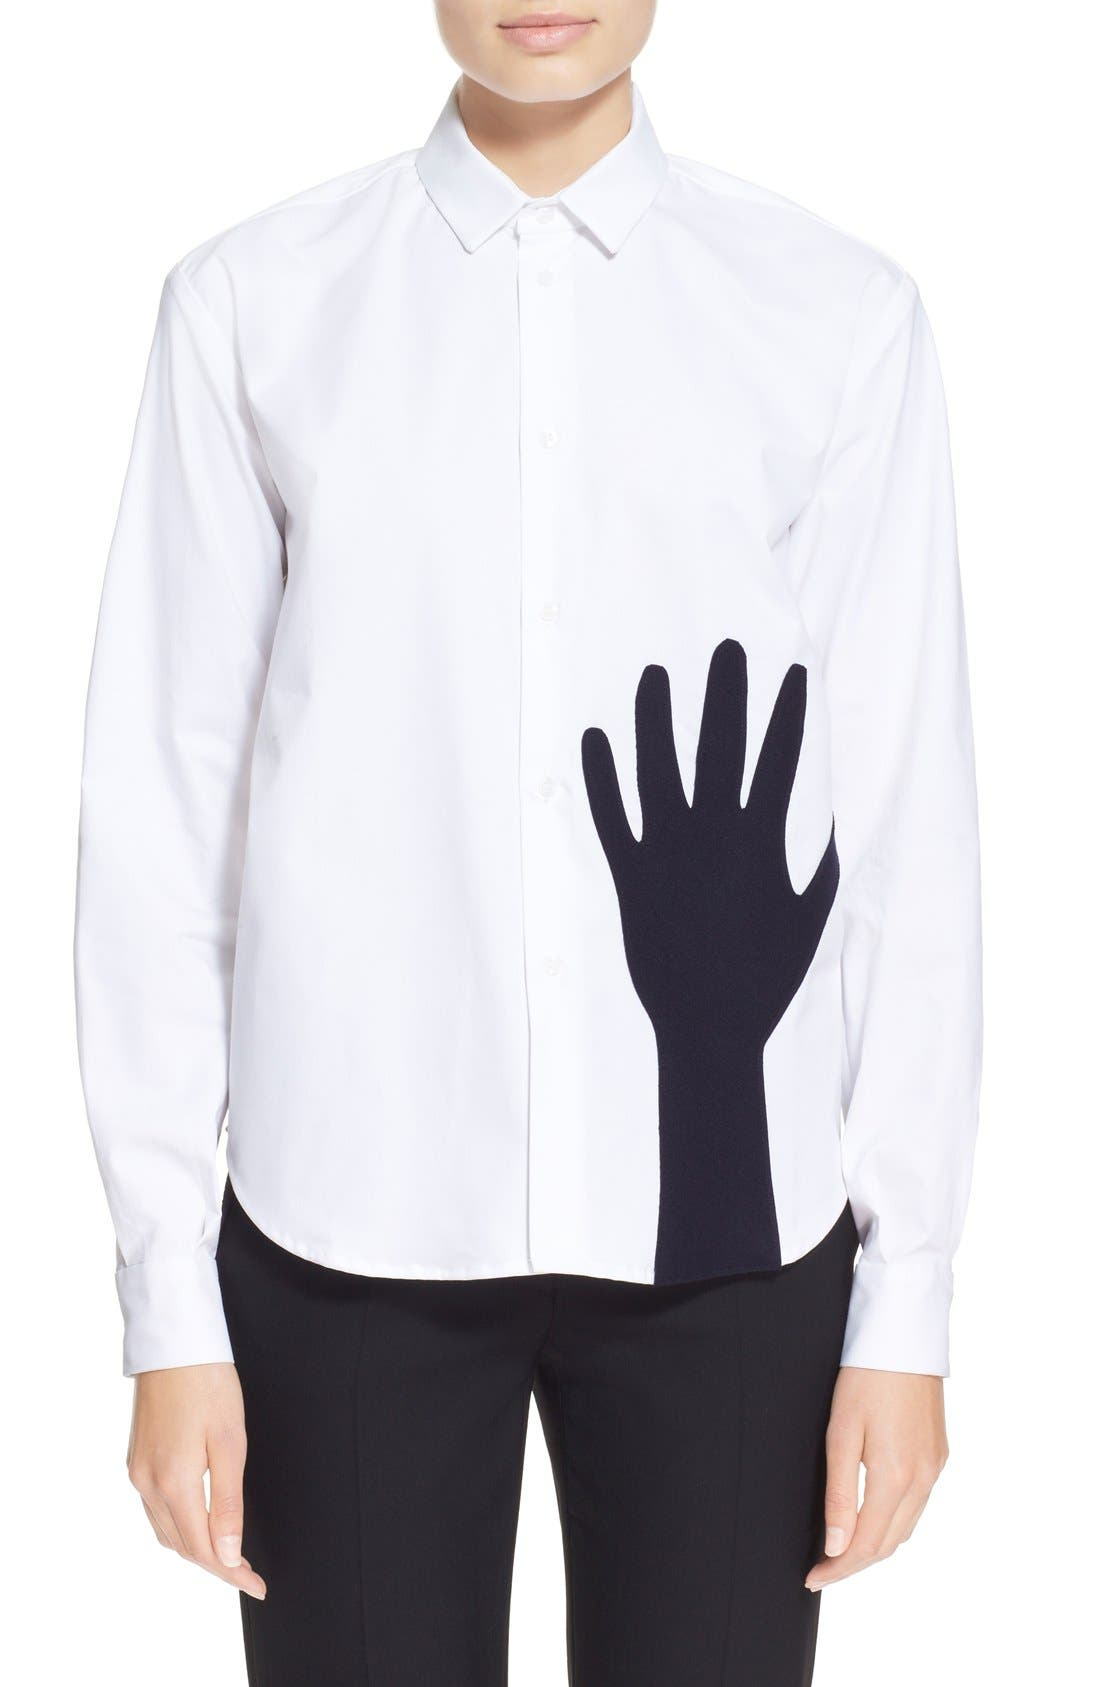 Alternate Image 1 Selected - JacquemusContrast Hand Stretch CottonShirt